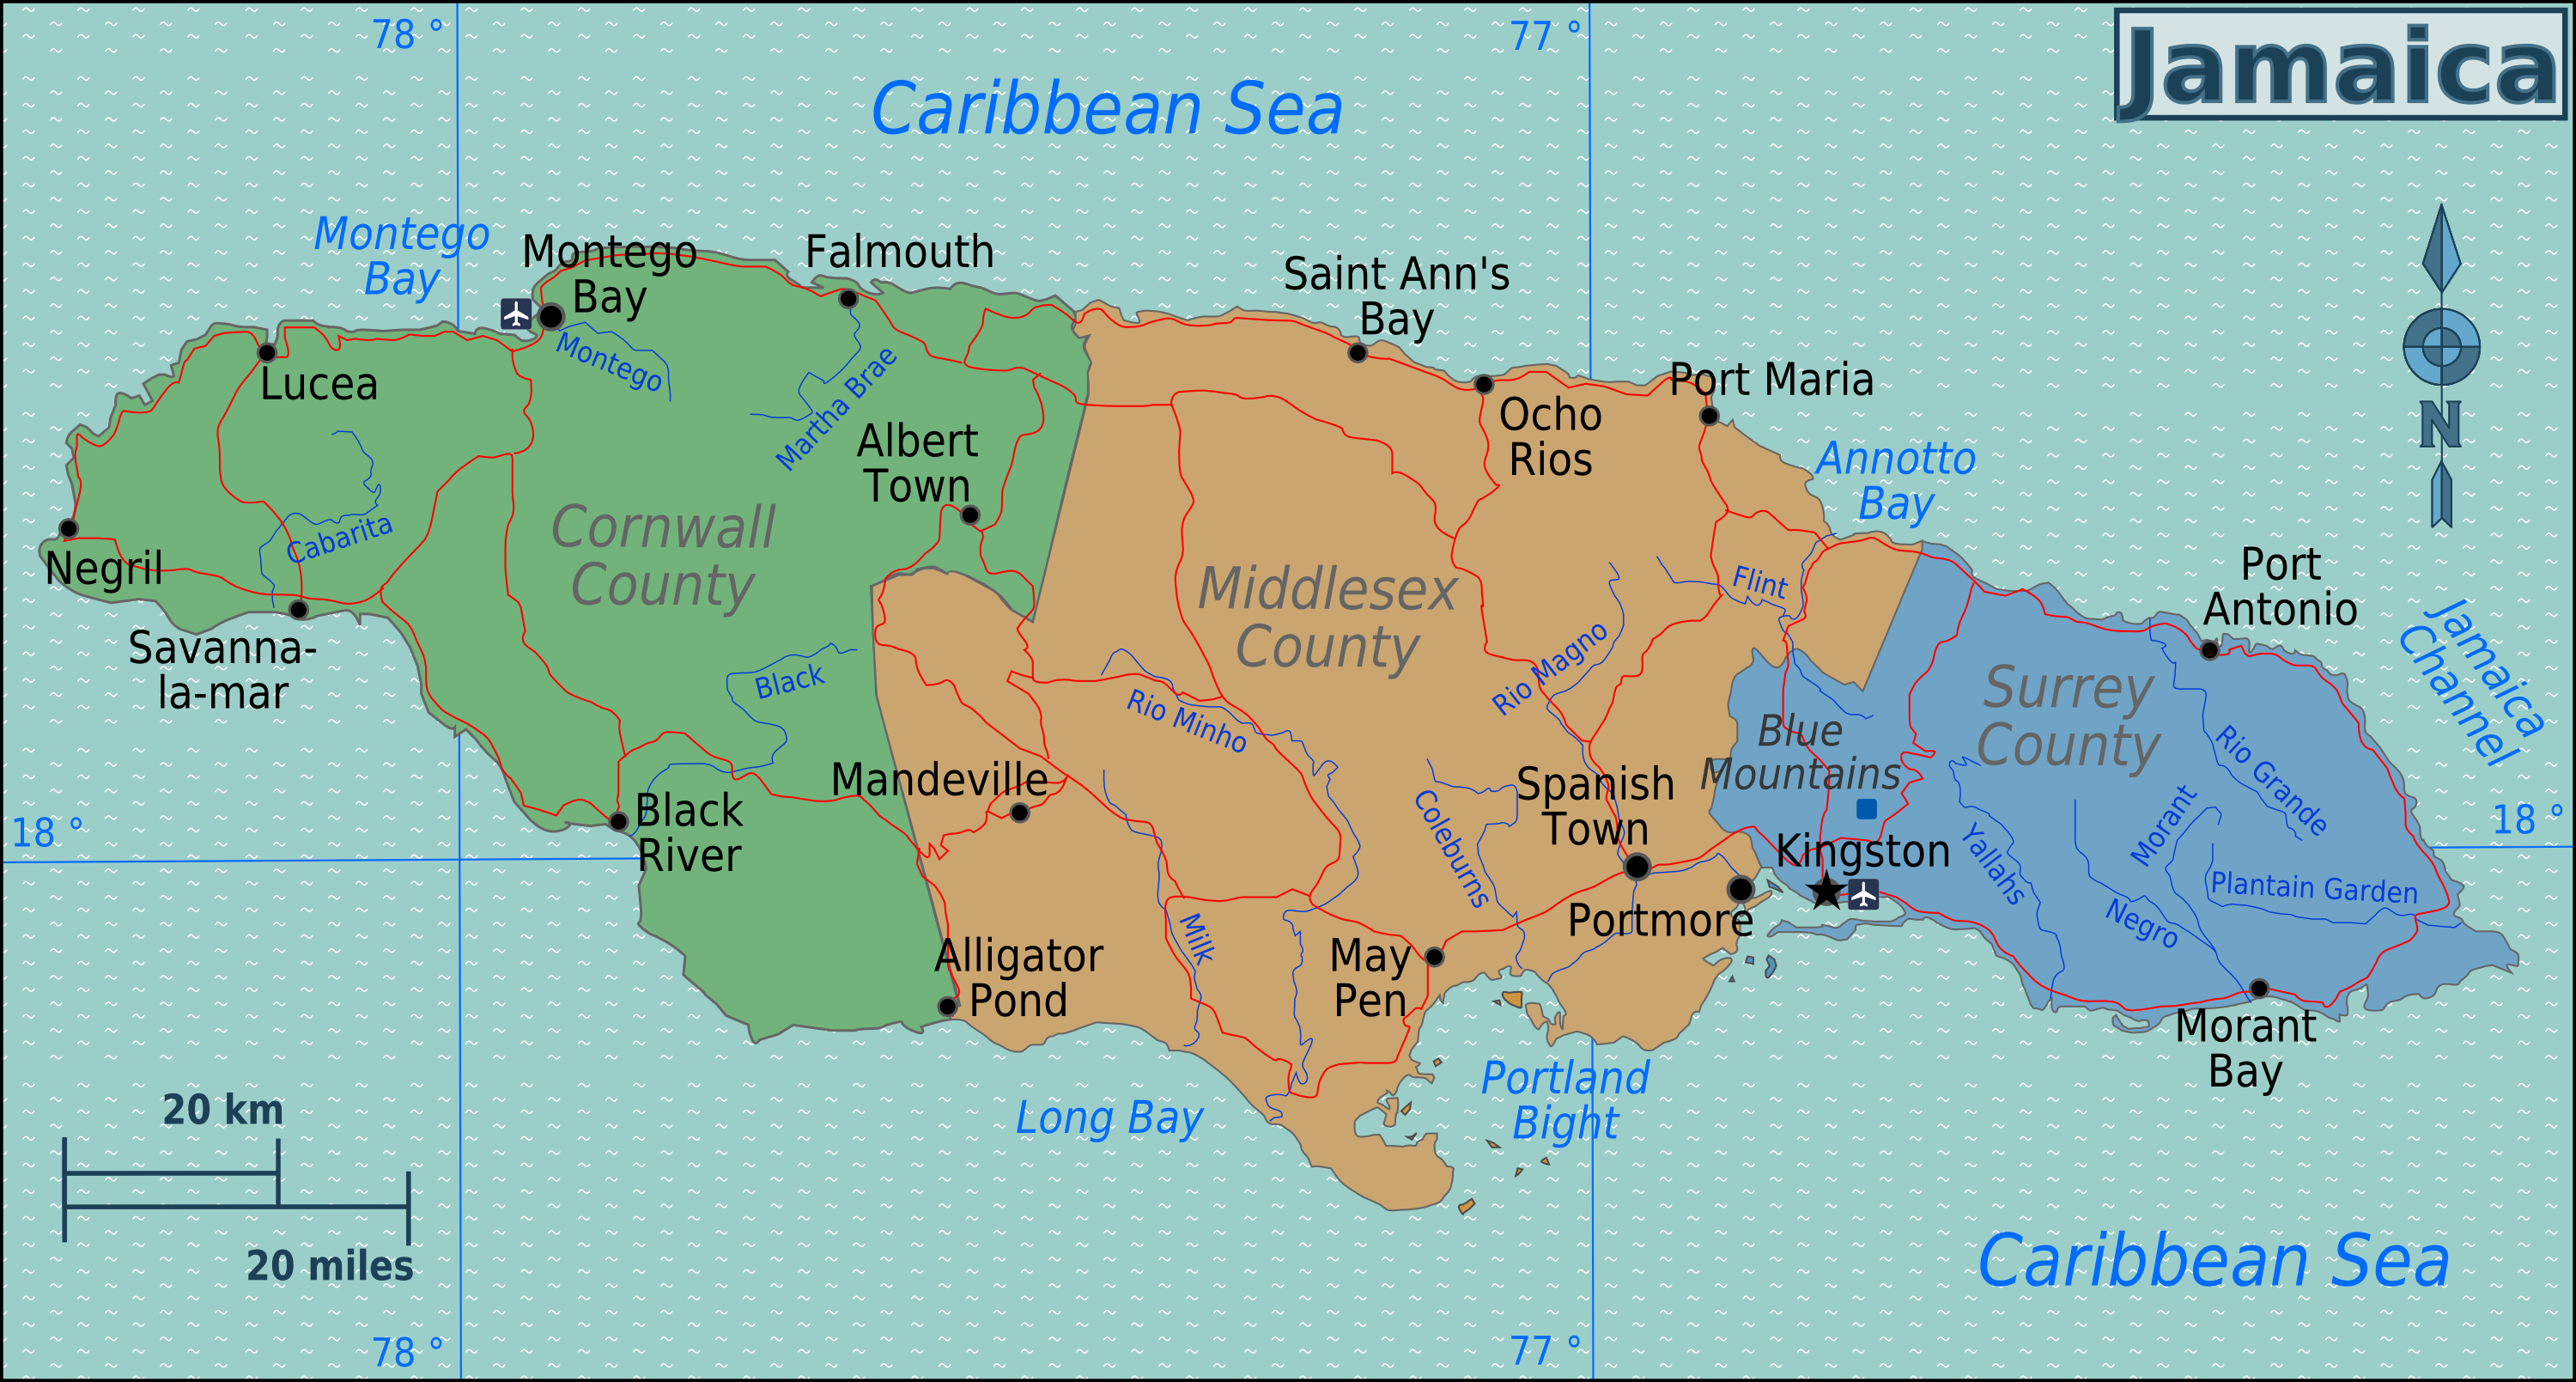 Jamaica Map | Jamaica | Pinterest | Negril, Montego bay and Negril ...